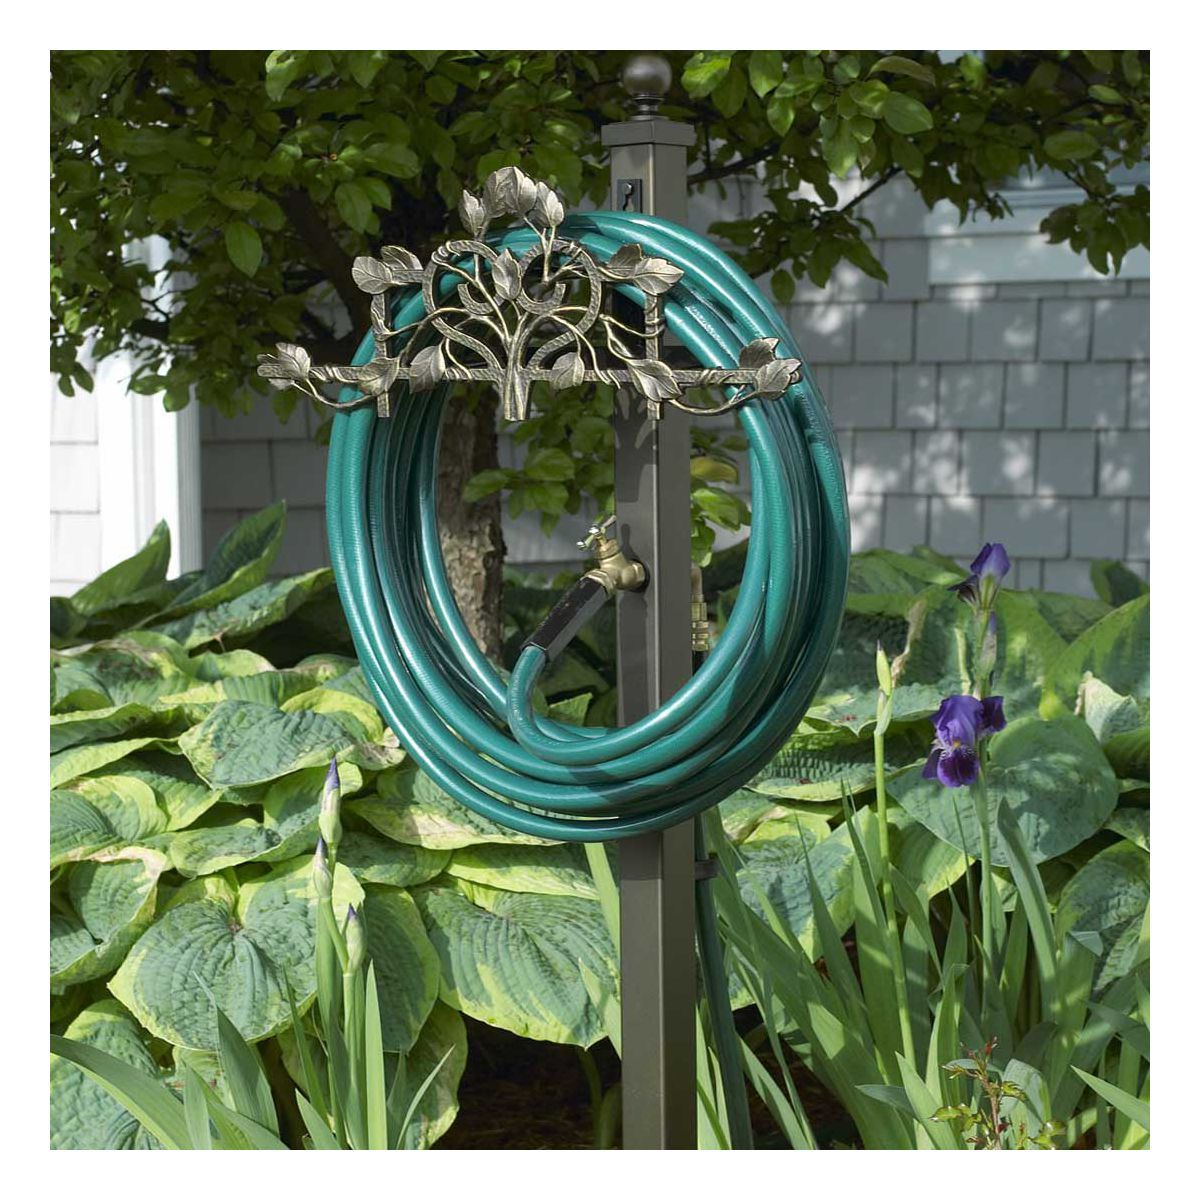 Decorative Garden Hose Holder with Outdoor Faucet Extension ...